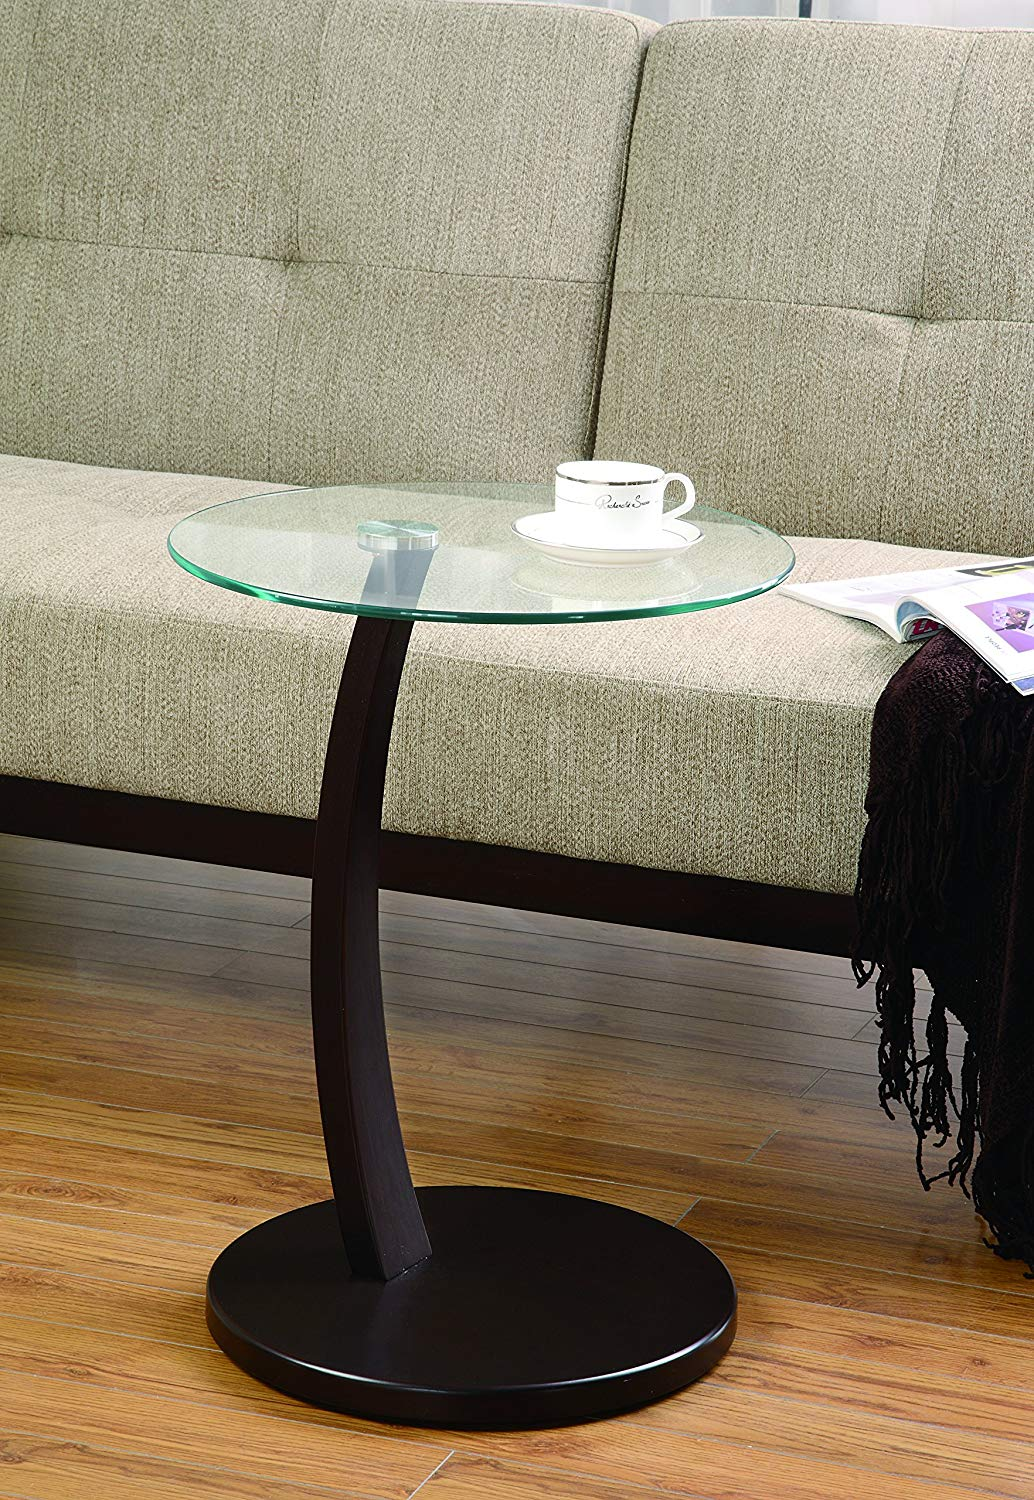 coaster home furnishings accent table with round glass dining room top cappuccino and clear kitchen cool coffee designs furniture pieces nightstand tablecloth make side outdoor